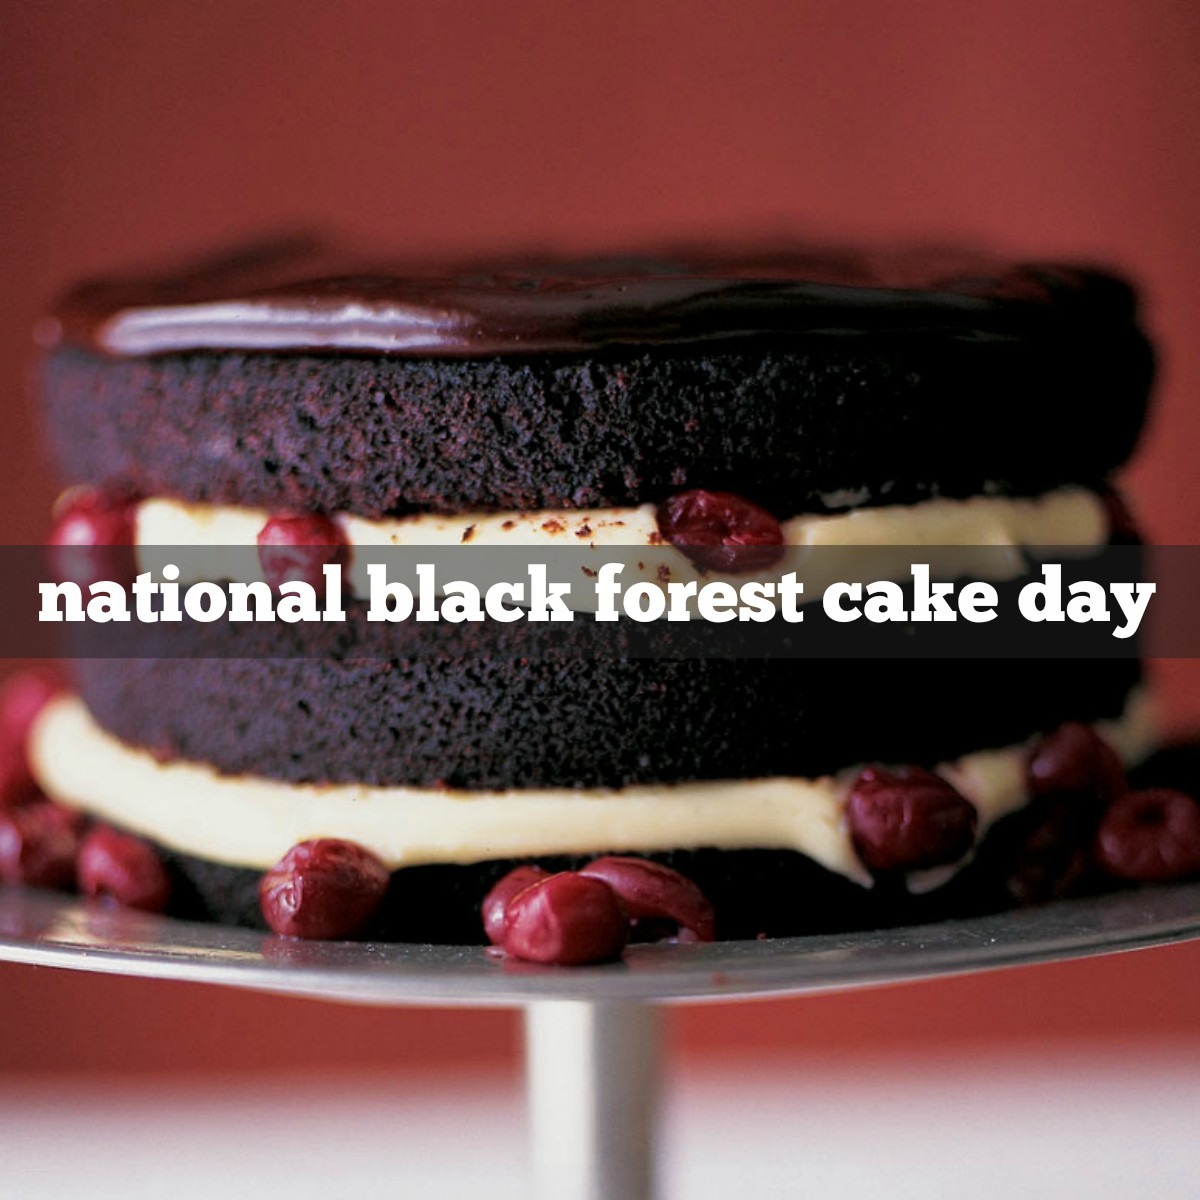 March 28th is National Black Forest Cake Day | Foodimentary ...